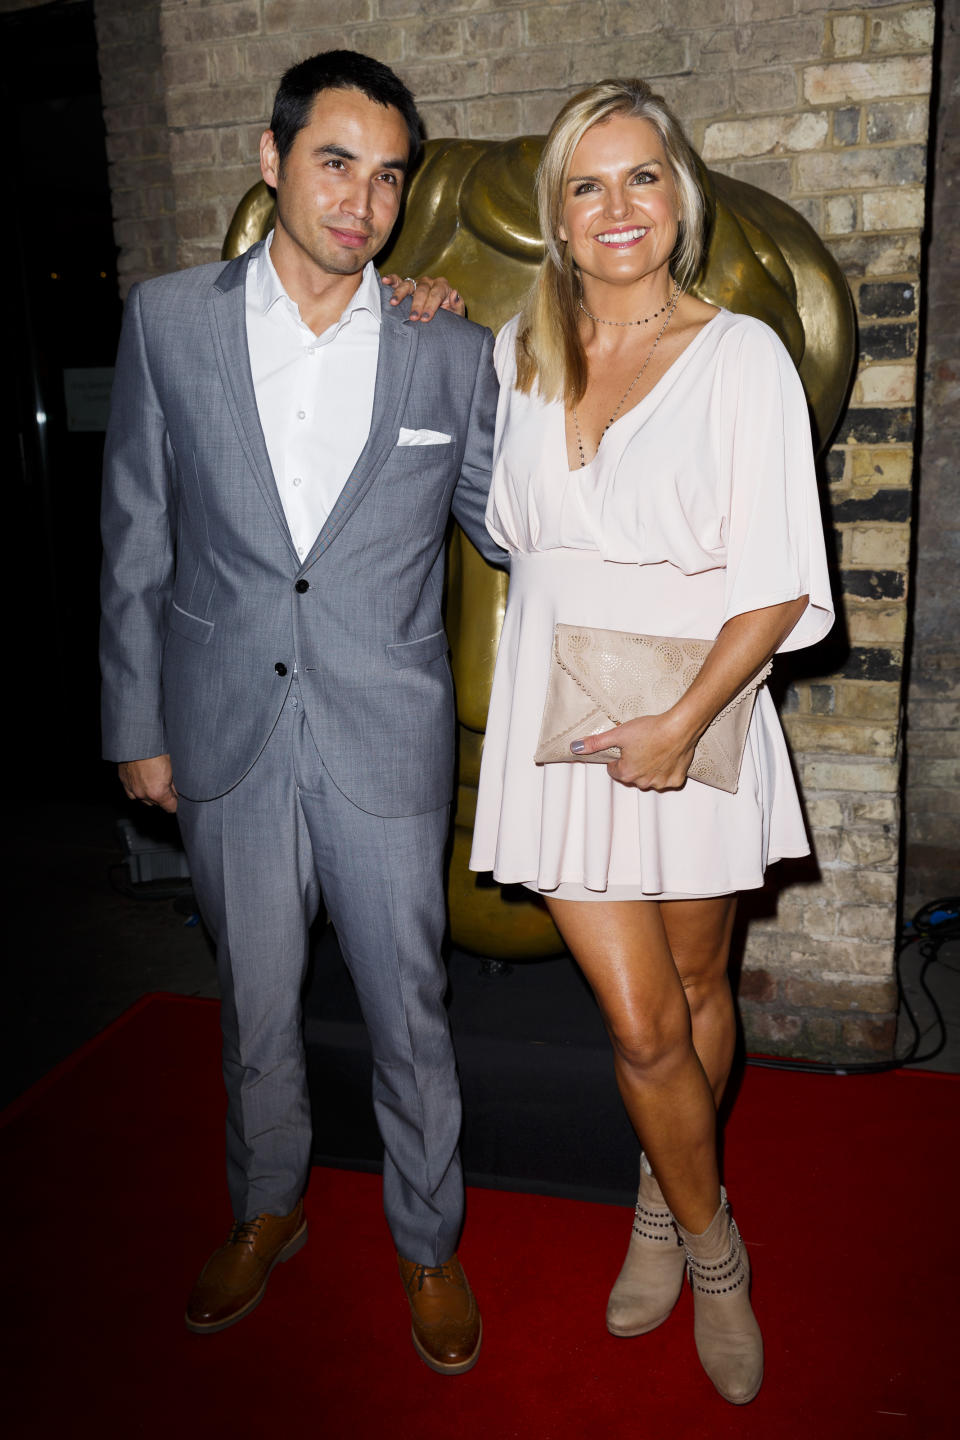 Katy Hill, who is married to Trey Farley, recently celebrated her 50th birthday. (Photo by Tristan Fewings/Getty Images)